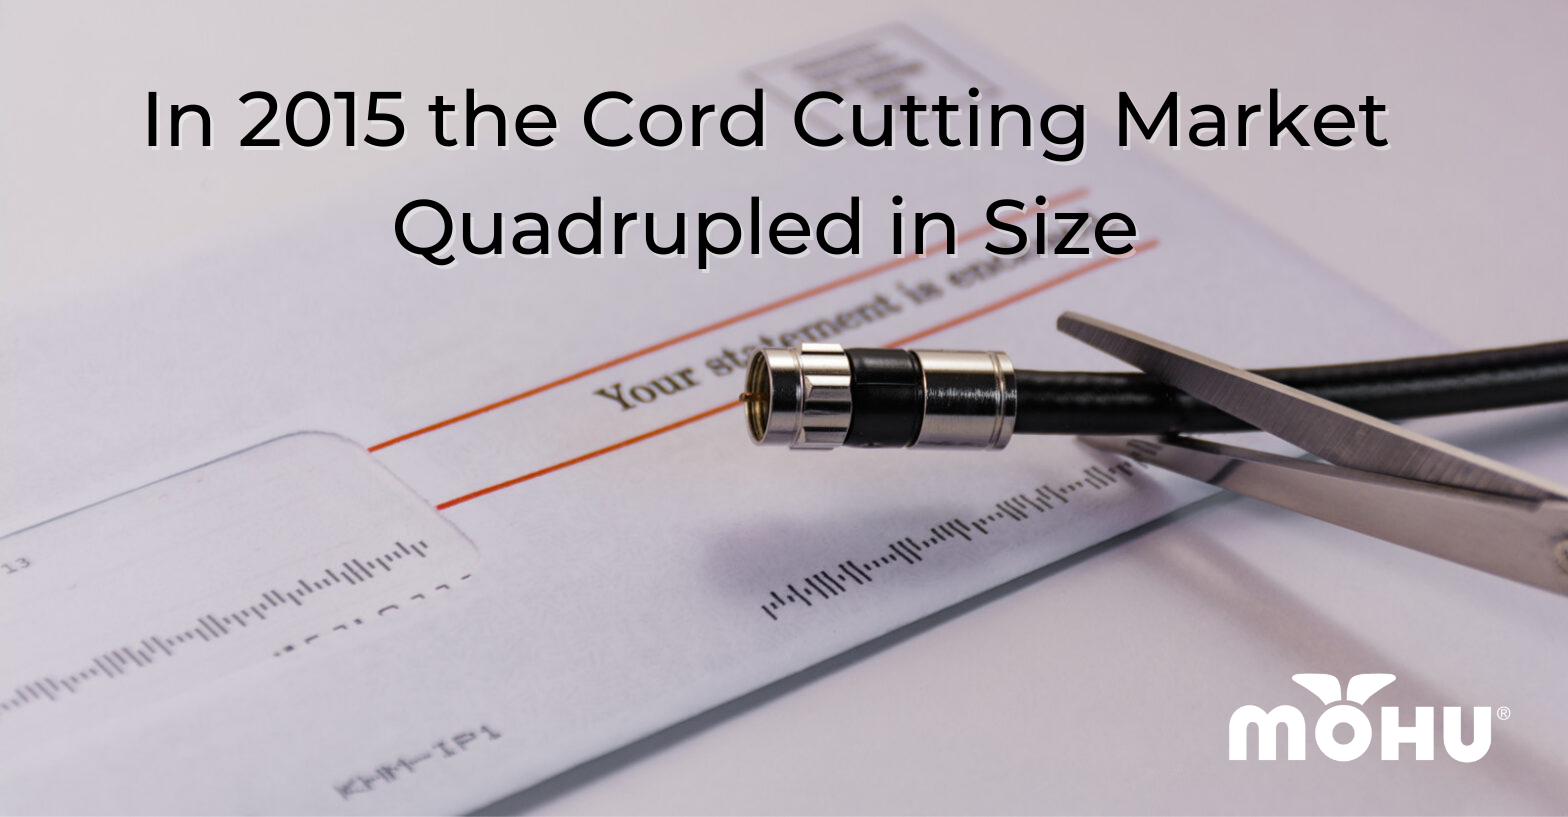 bill on table with a cord being cut on top of it, In 2015 the Cord Cutting Market Quadrupled in Size, mohu logo